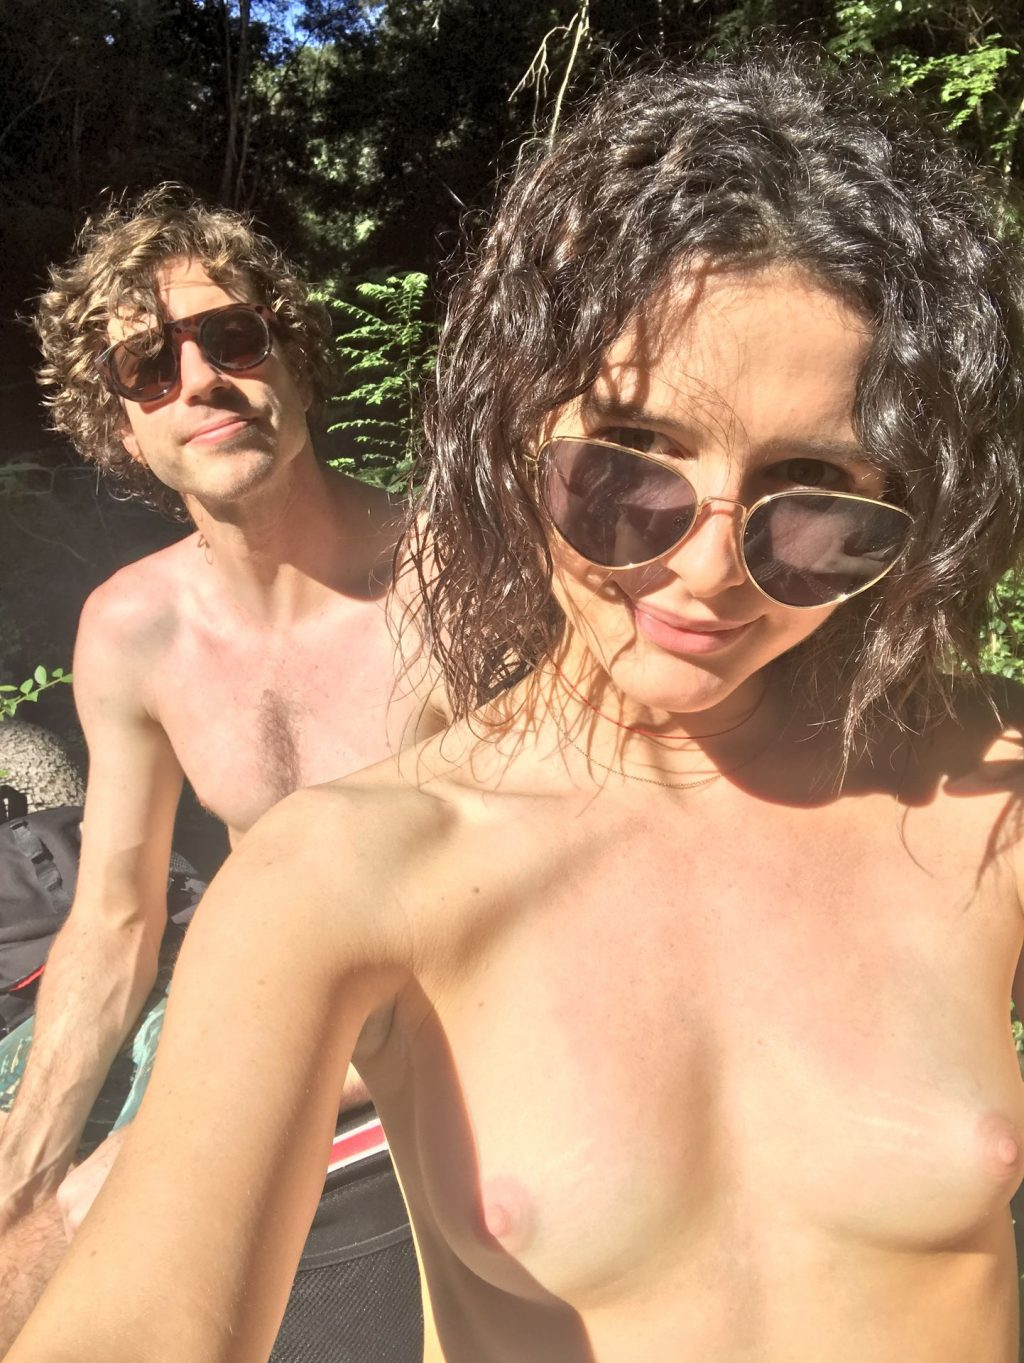 Georgia Flood Nude Leaked The Fappening (106 Photos + Videos)